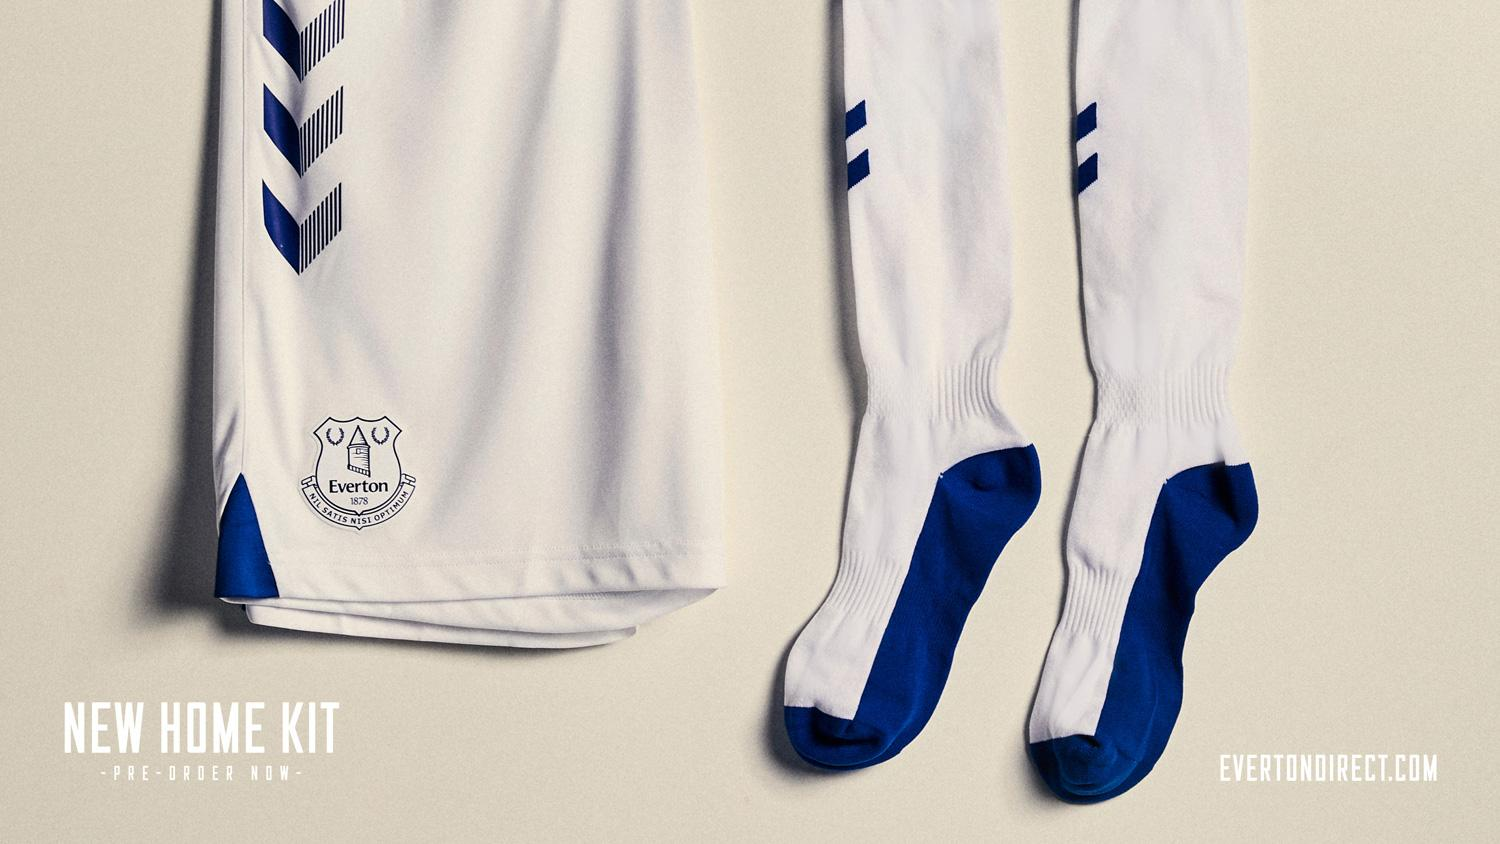 everton-20-21-home-kit-shorts-socks